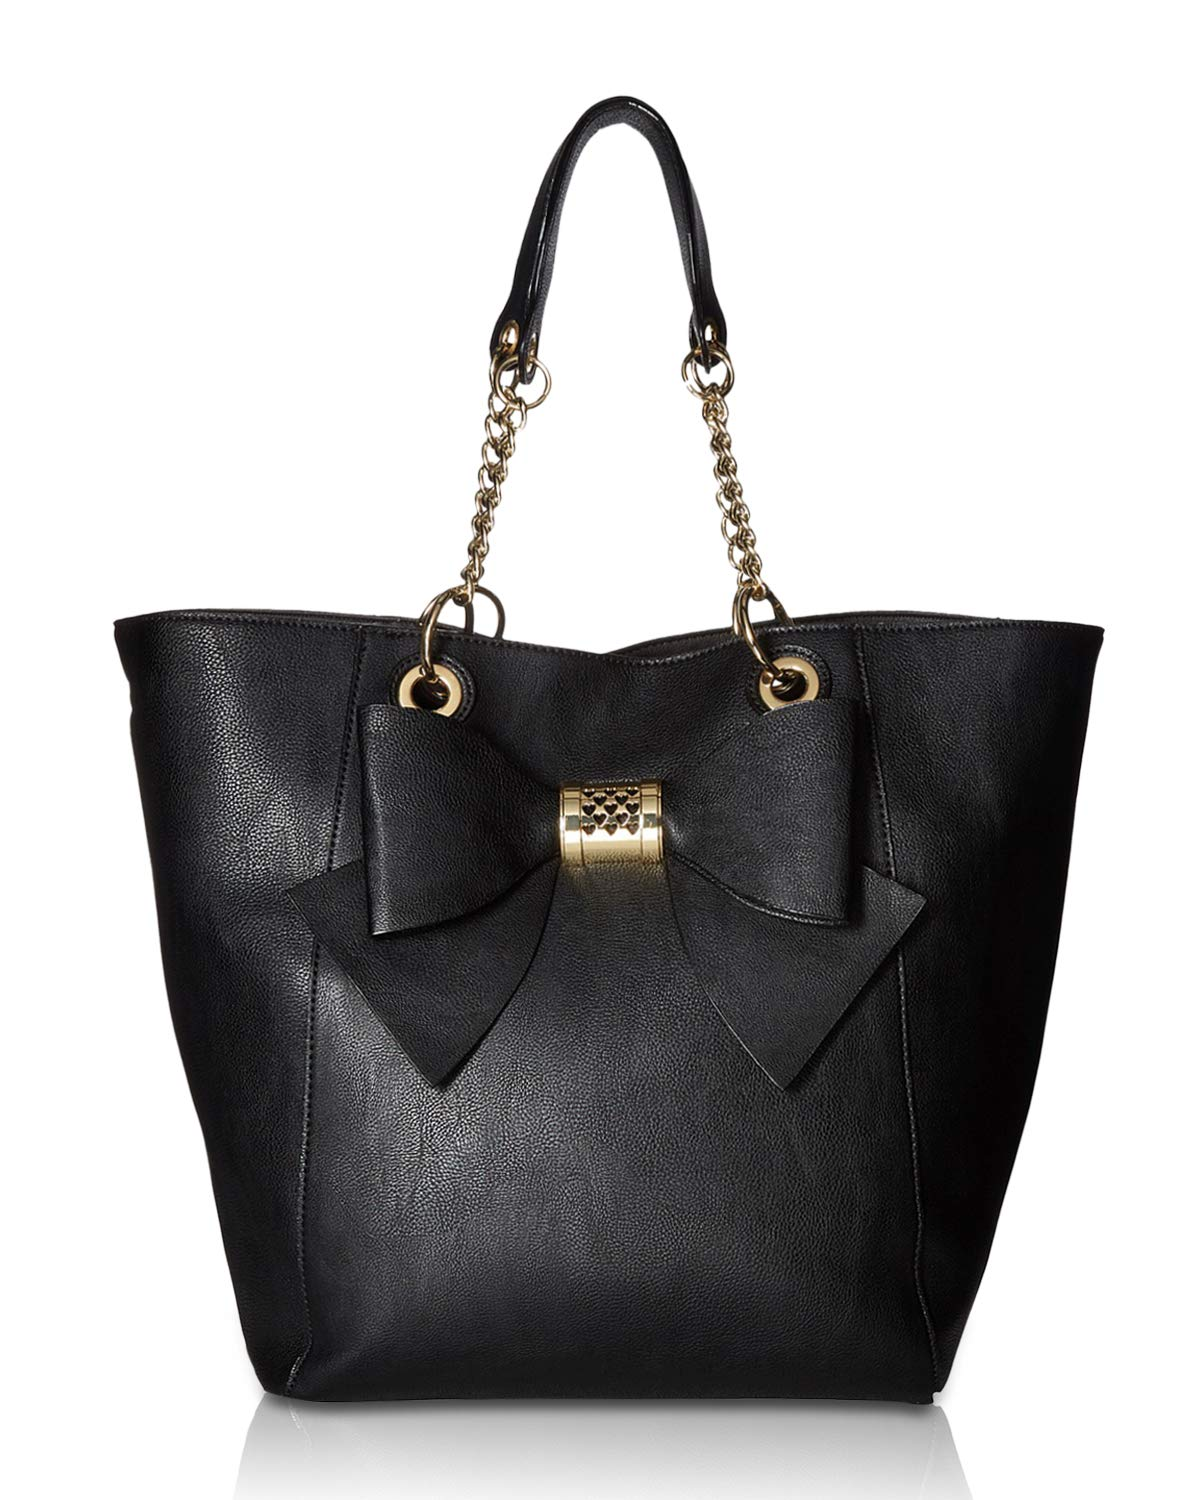 Betsey Johnson Women's Bag in Bag Bow Tote Black One Size